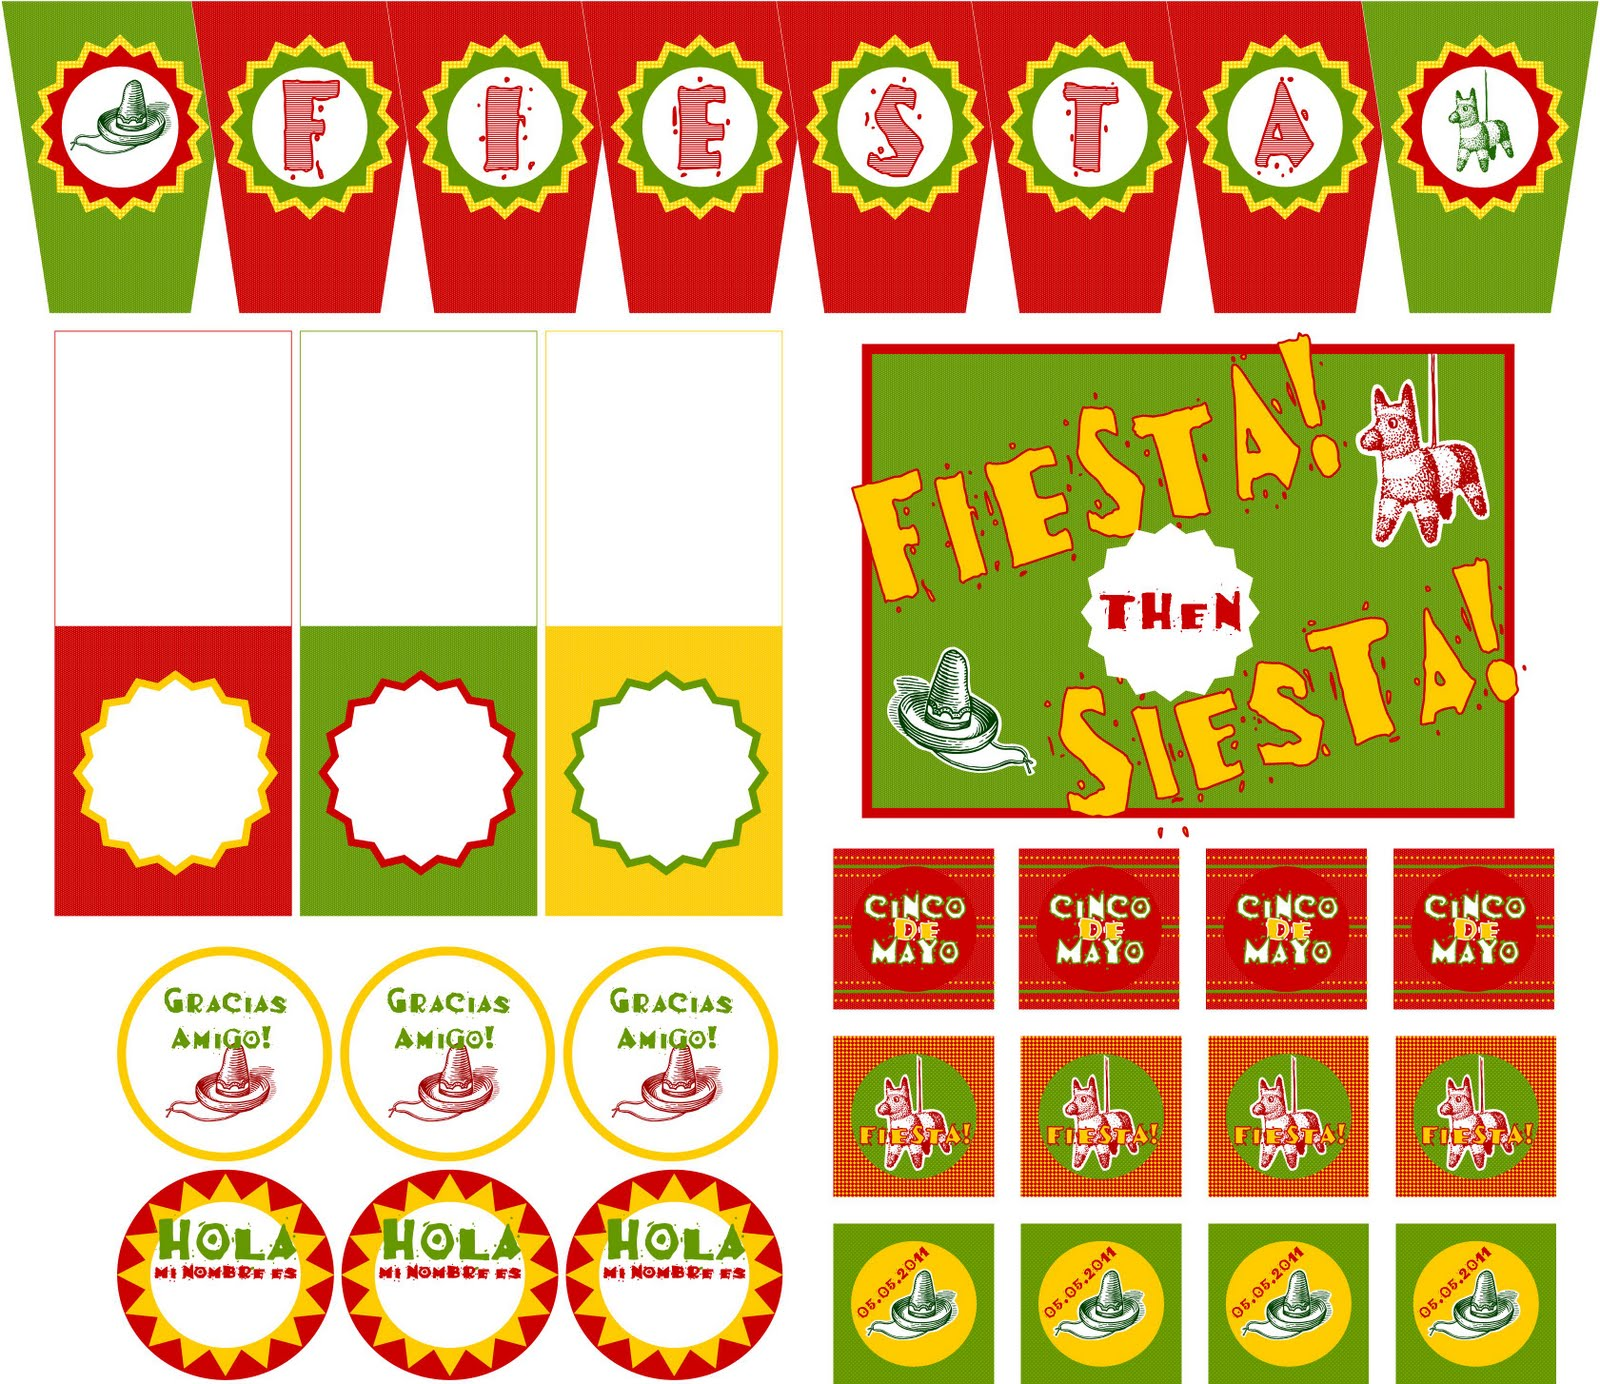 Embellish Free Printables Amp Tutorial Cinco De Mayo Fiesta